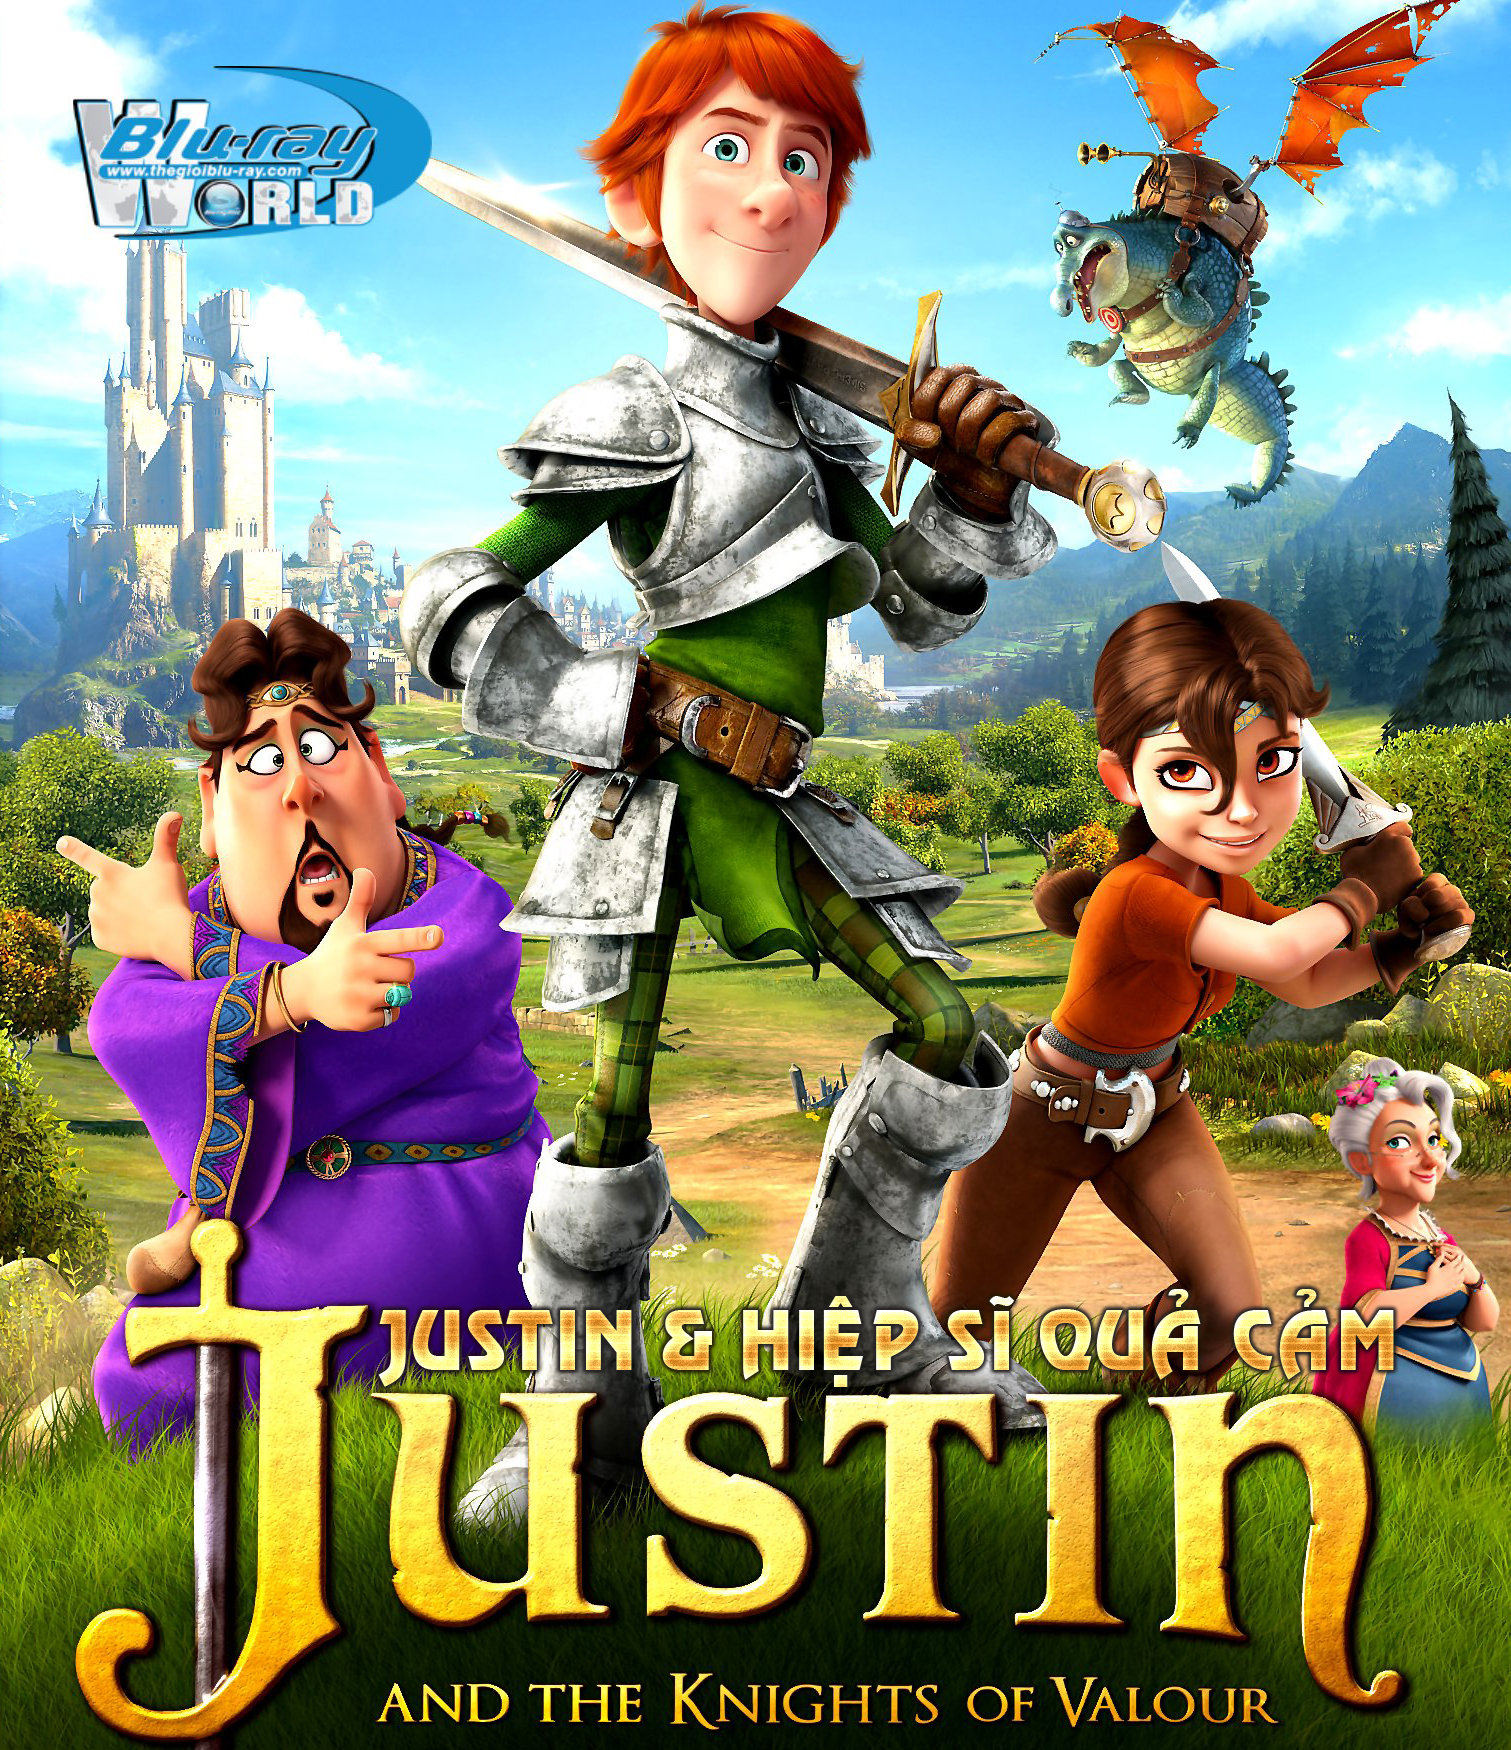 B1567. Justin And The Knights Of Valour - JUSTIN & HIỆP SỸ QUẢ CẢM 2D 25G (DTS-HD MA 5.1)